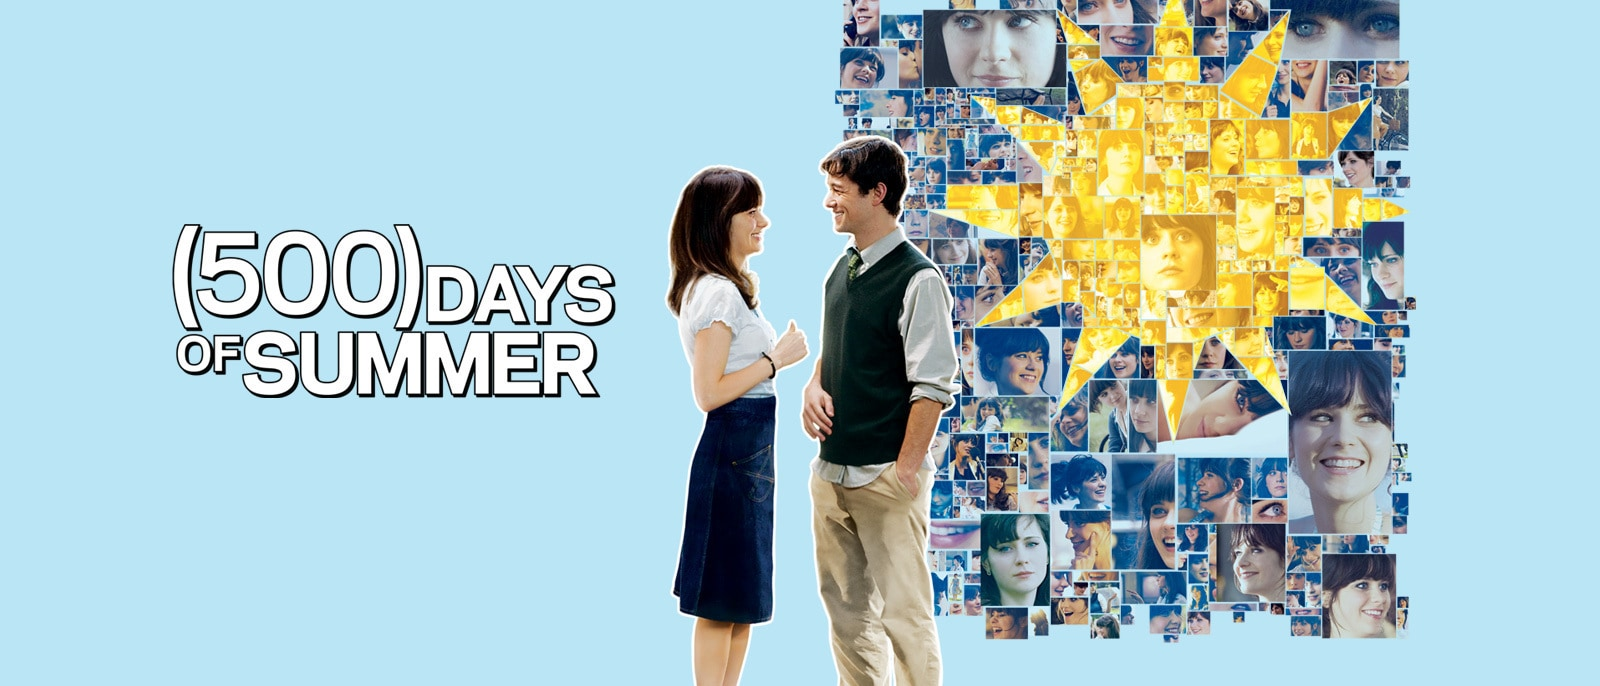 500 Days of Summer Hero